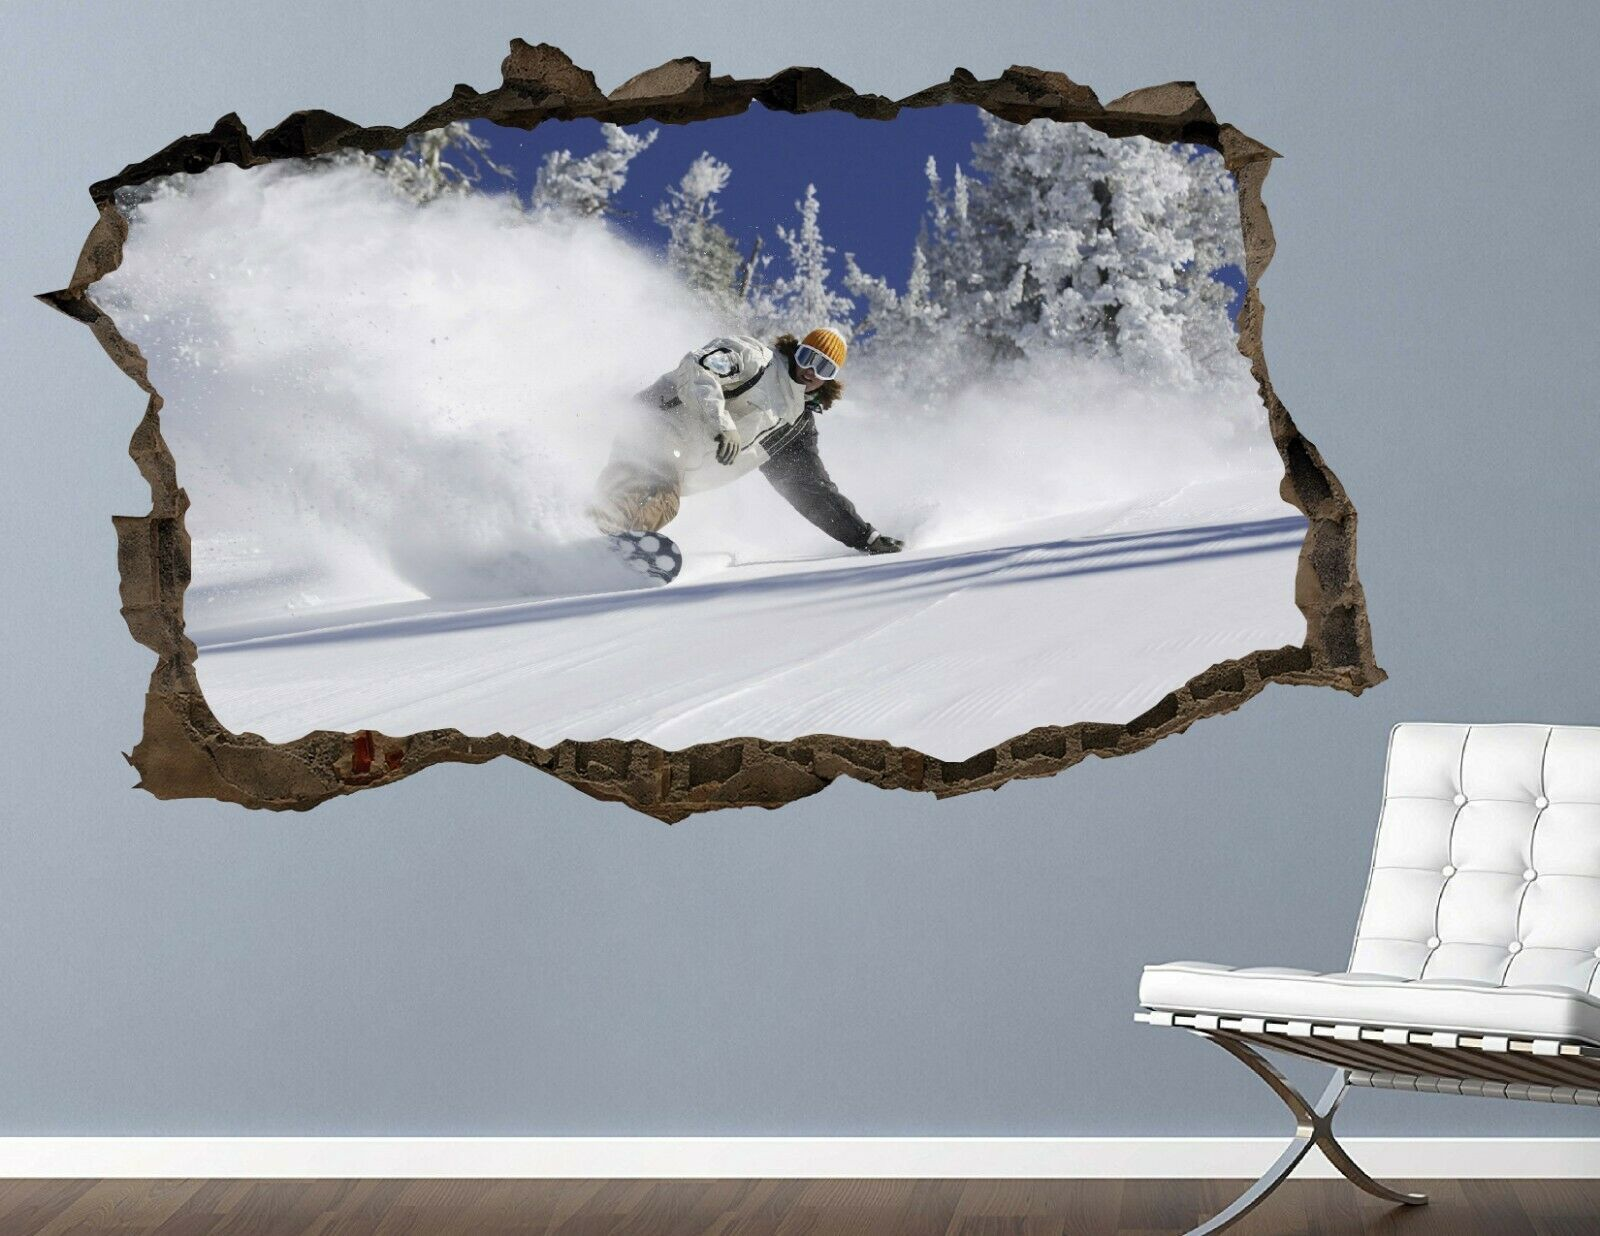 Photo of Snowboard Maneuvers wall decals stickers mural home decor for bedroom Art AH661 – Medium (Wide 30 x 18 Height)